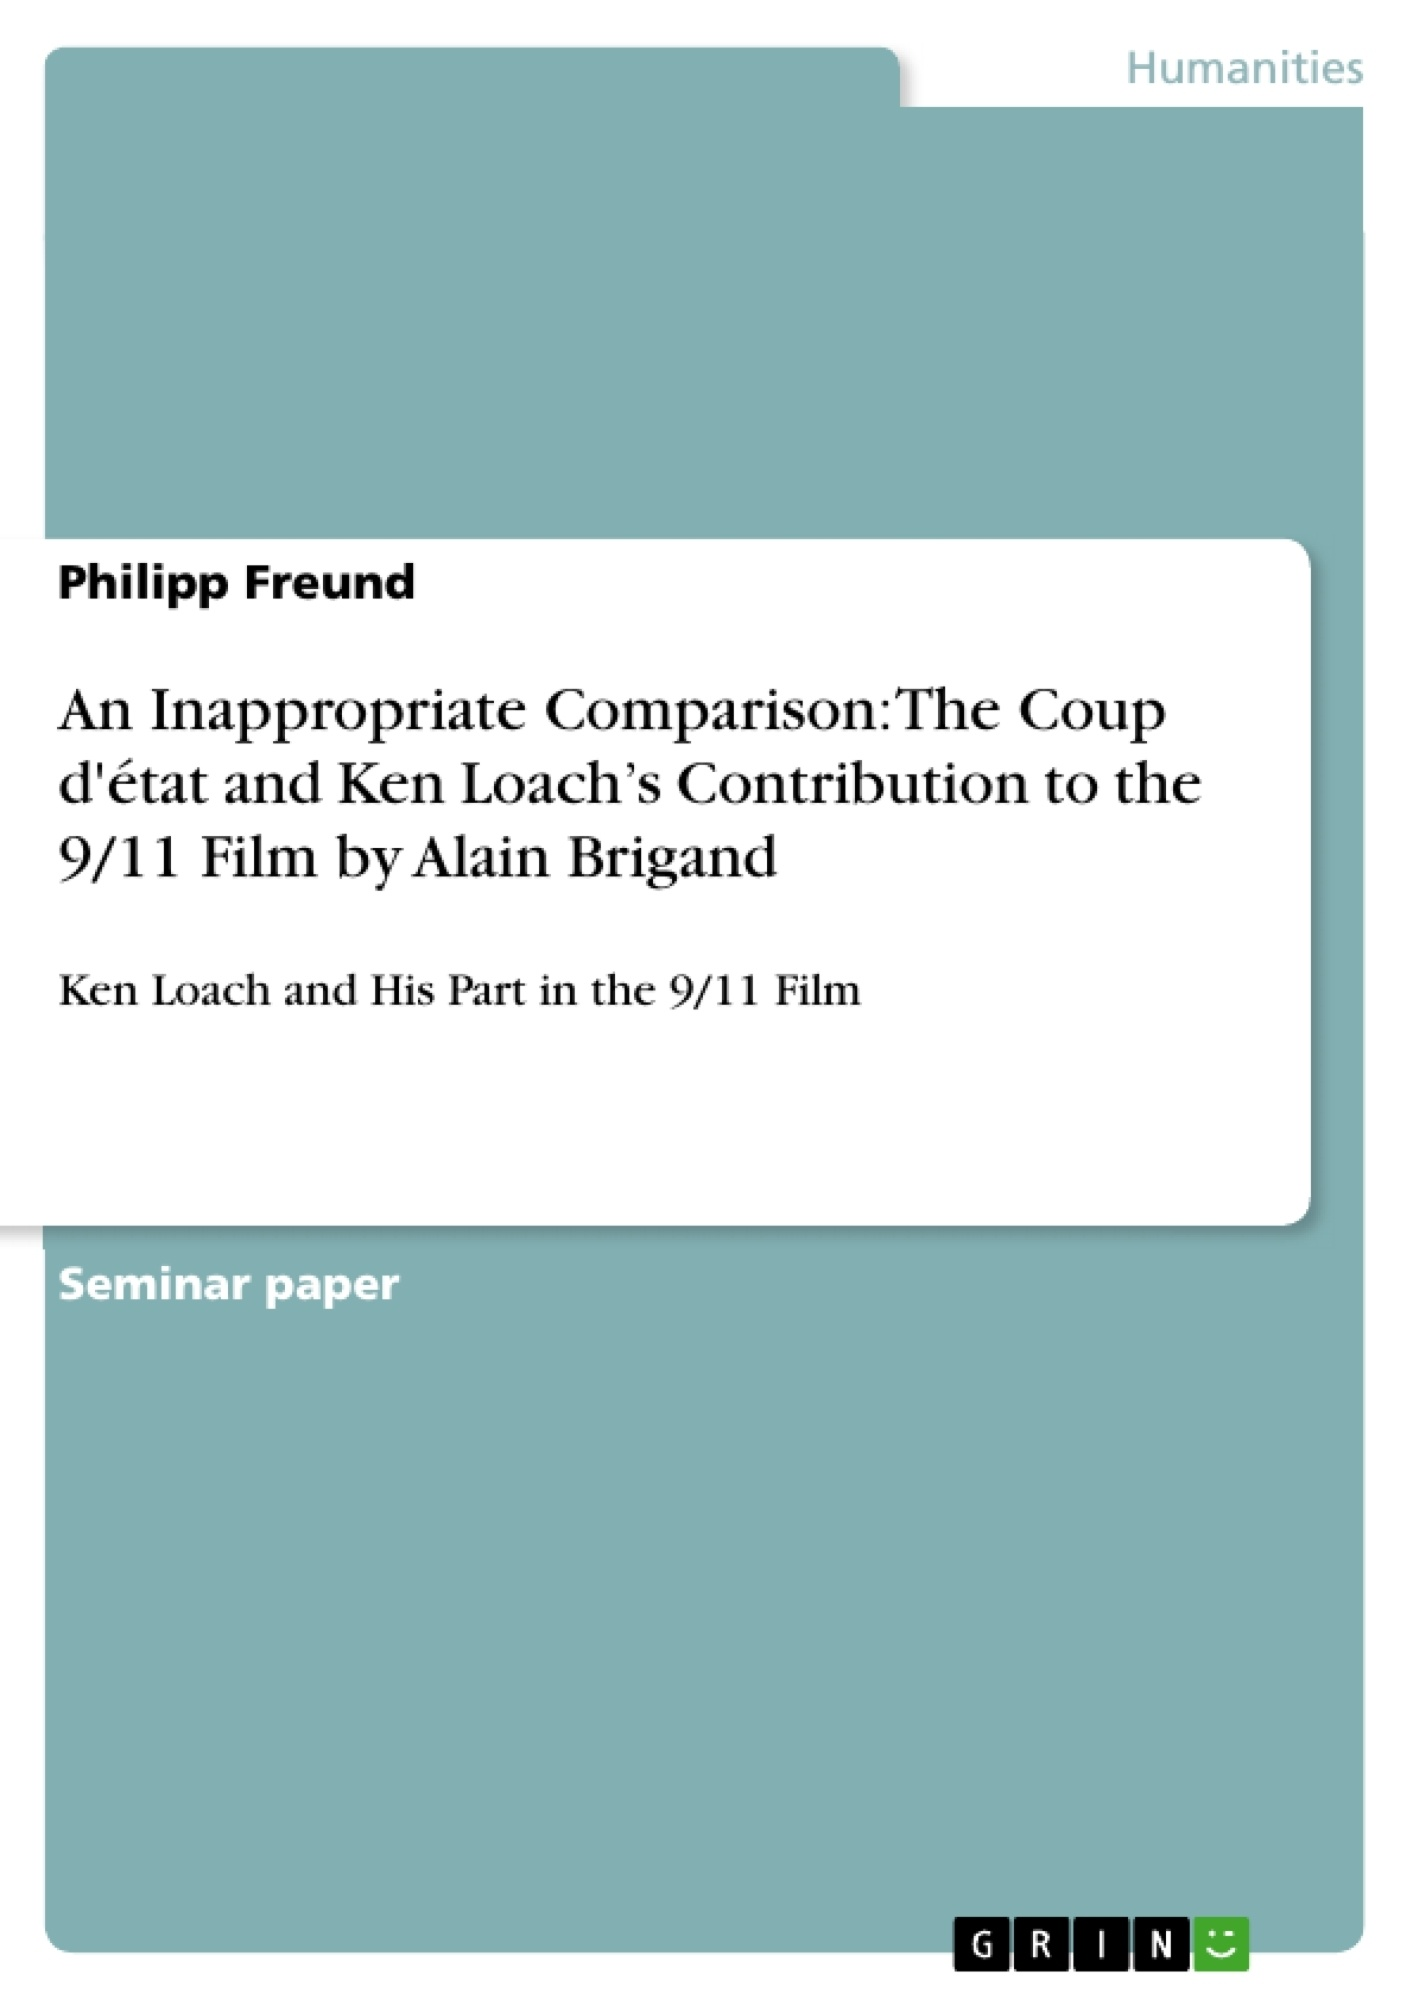 Title: An Inappropriate Comparison: The Coup d'état and Ken Loach's Contribution to the 9/11 Film by Alain Brigand